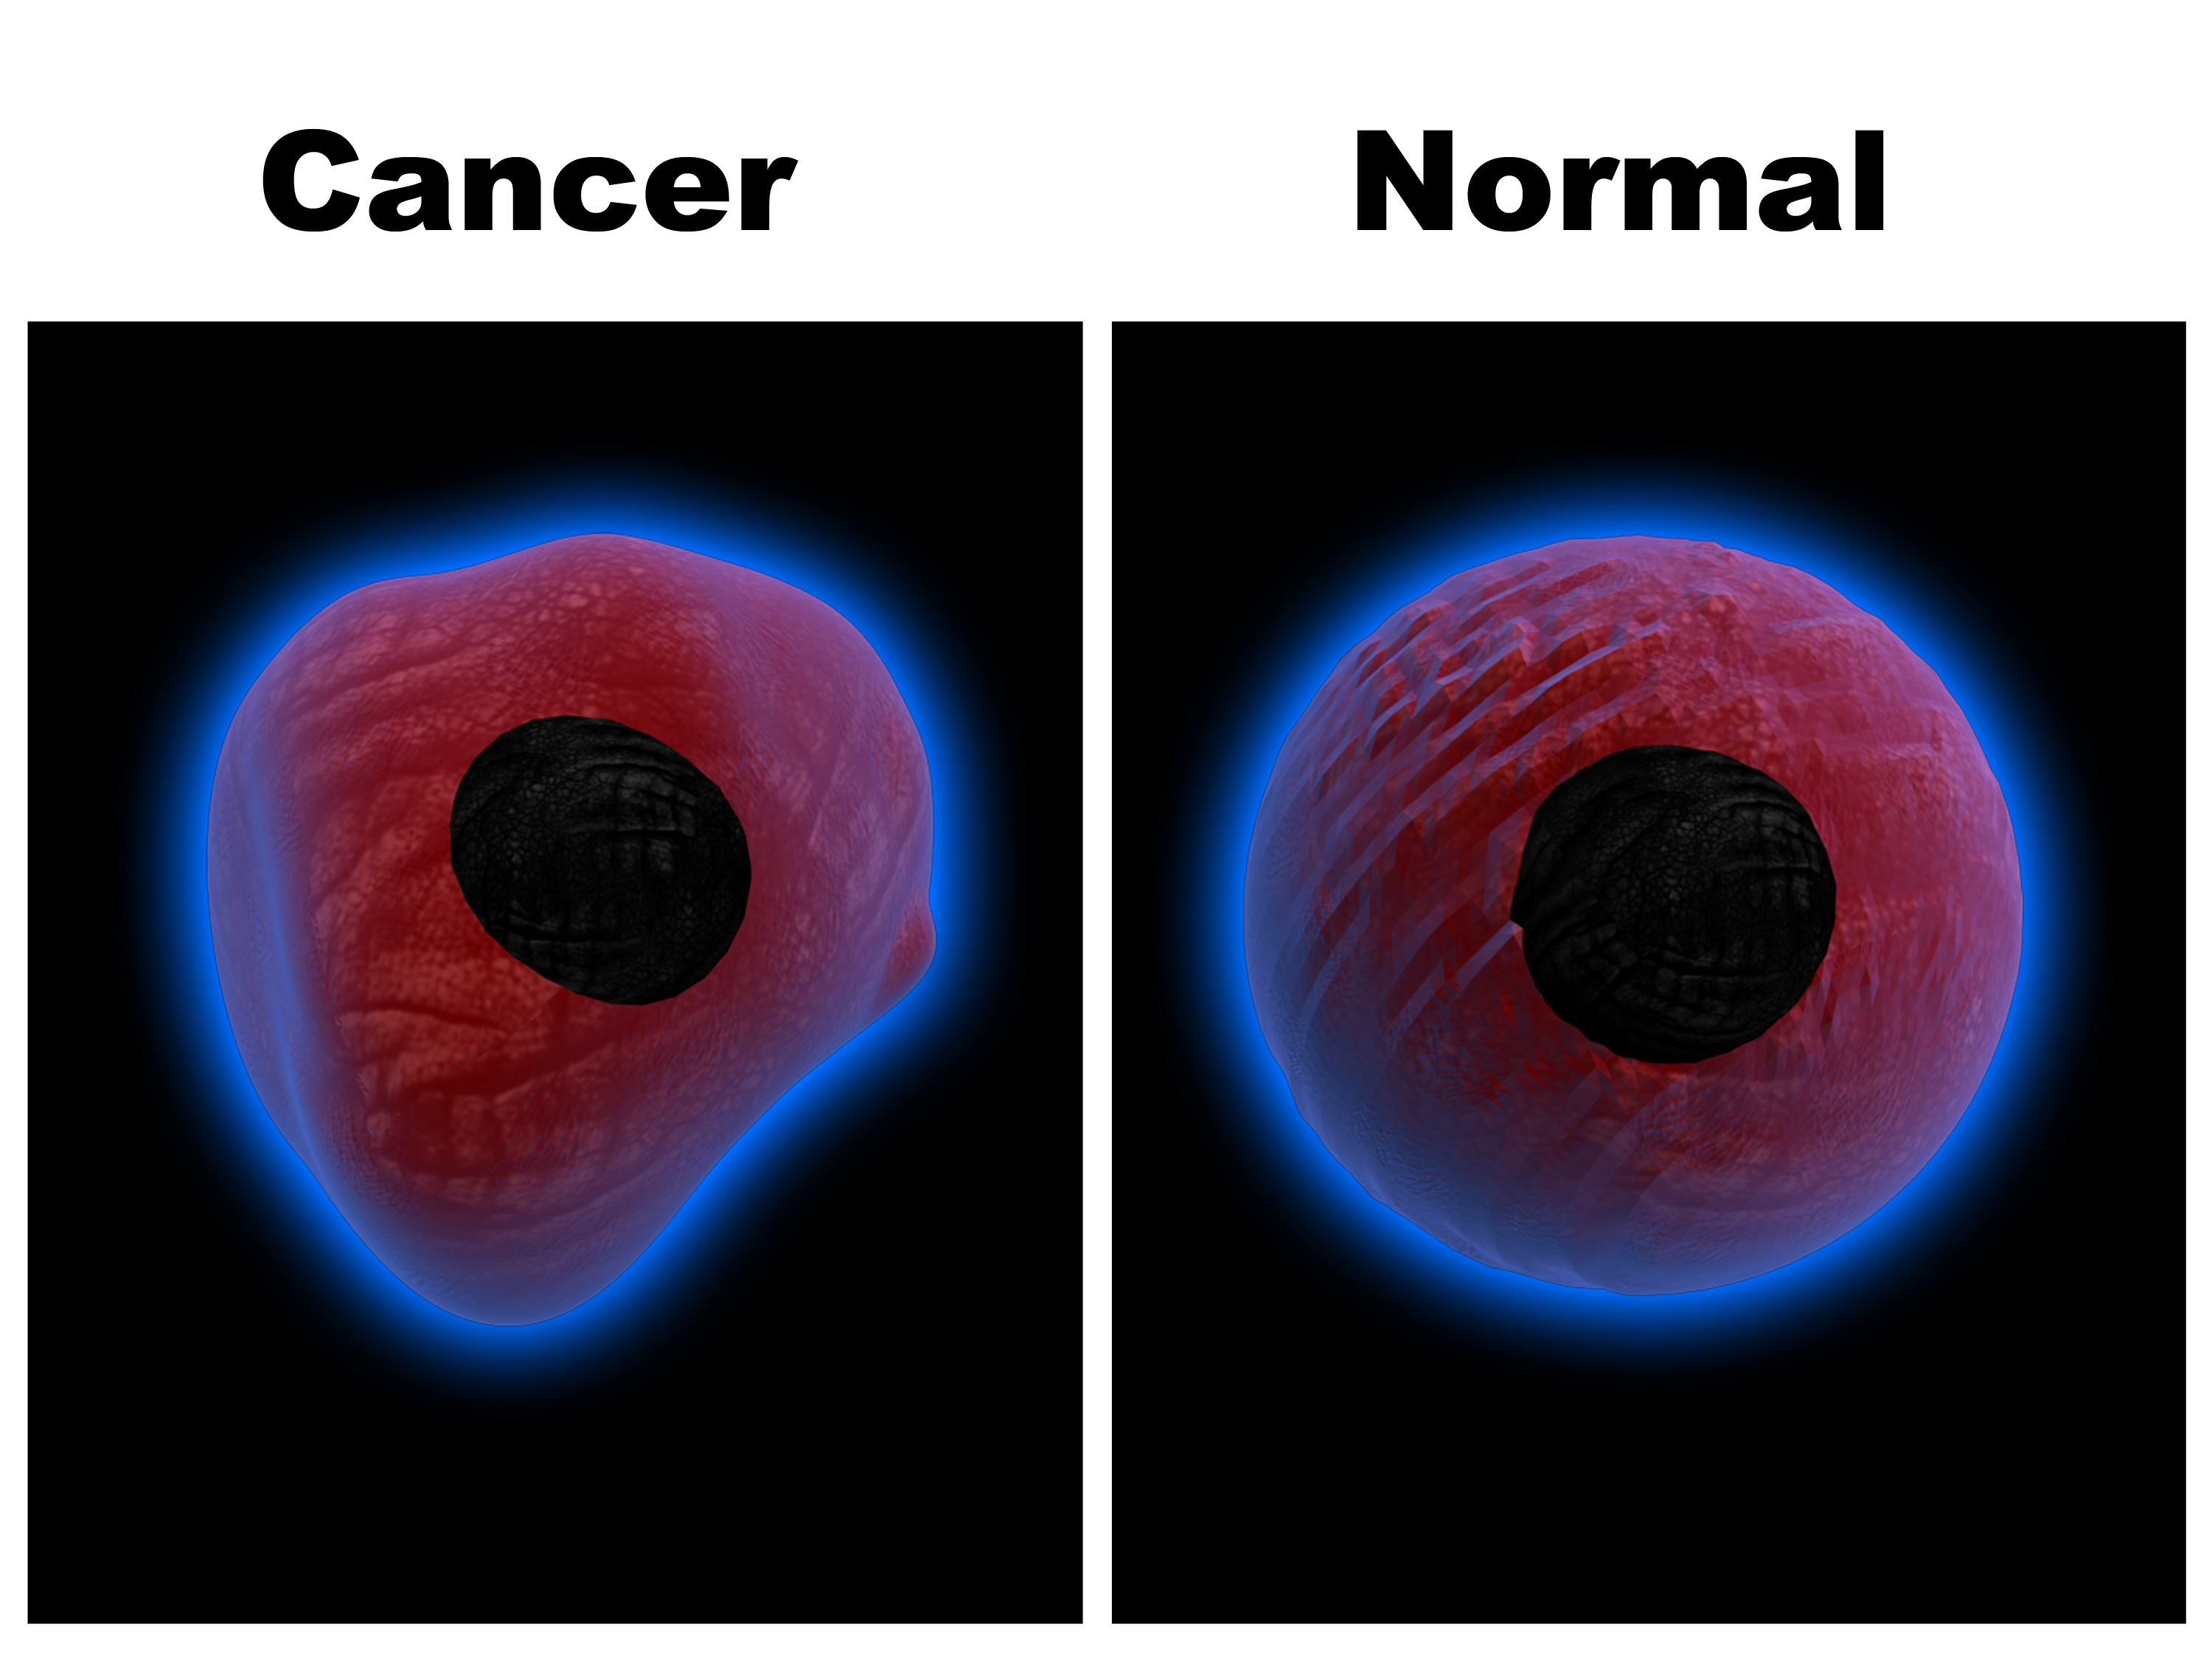 Cancer vs Normal Cell